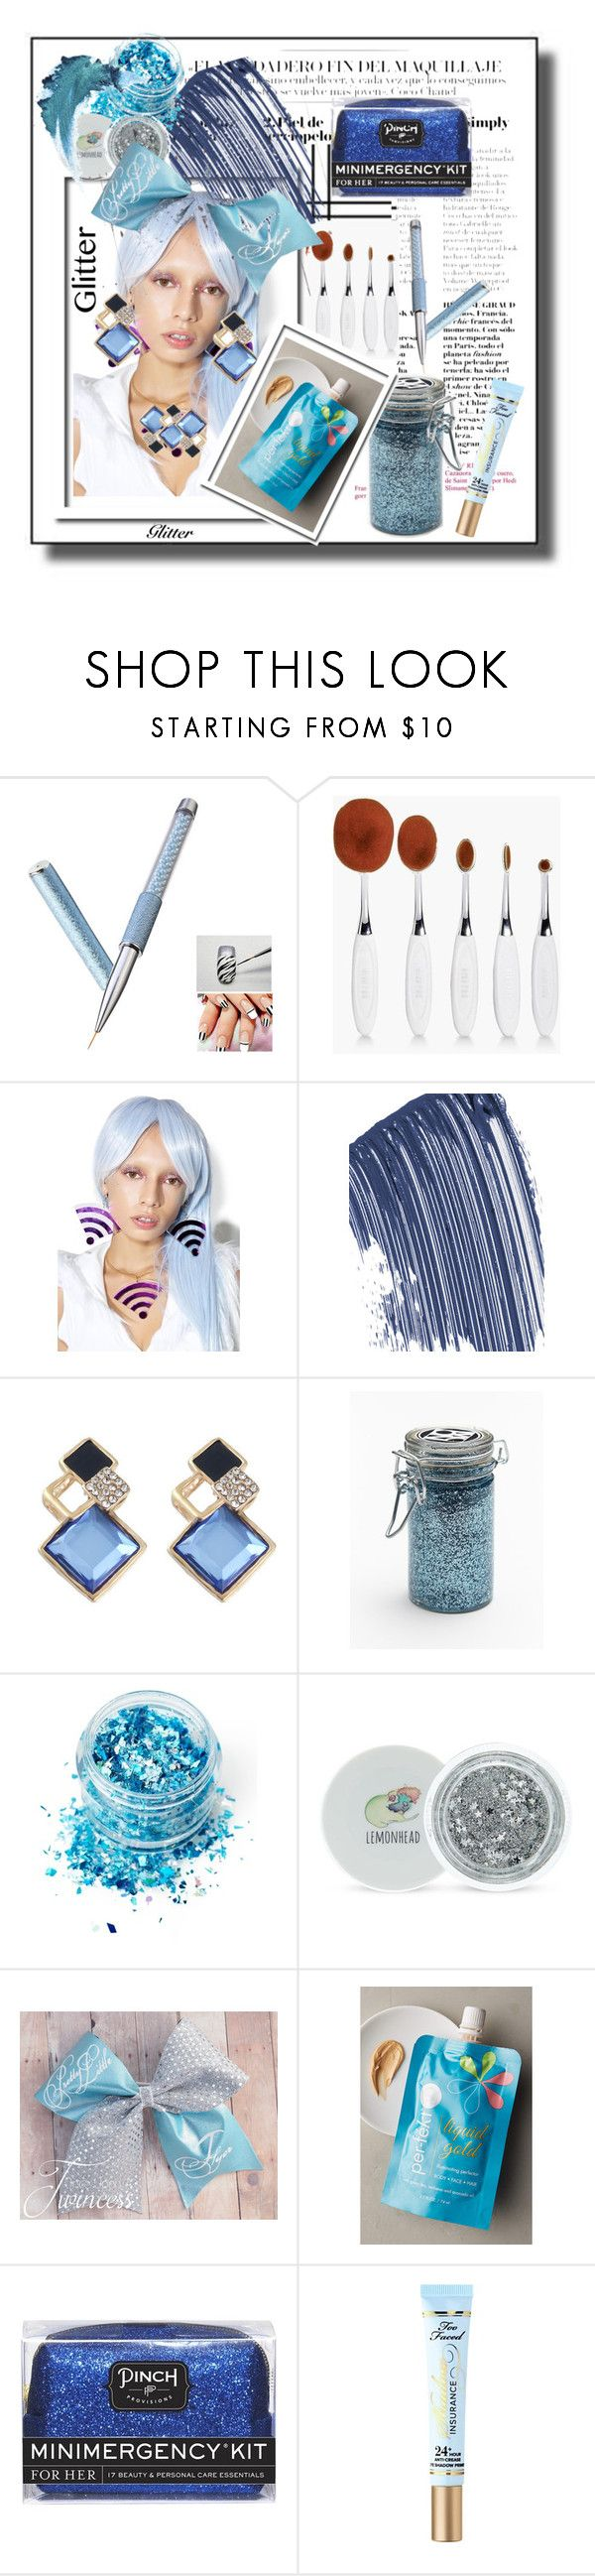 """Shine On Cerulean Girl 💡"" by mavinex-de-nova ❤ liked on Polyvore featuring beauty, Boohoo, Marina Fini, Guerlain, Major Moonshine, In Your Dreams, Forever 21, Per-fékt Beauty, Pinch Provisions and Too Faced Cosmetics"